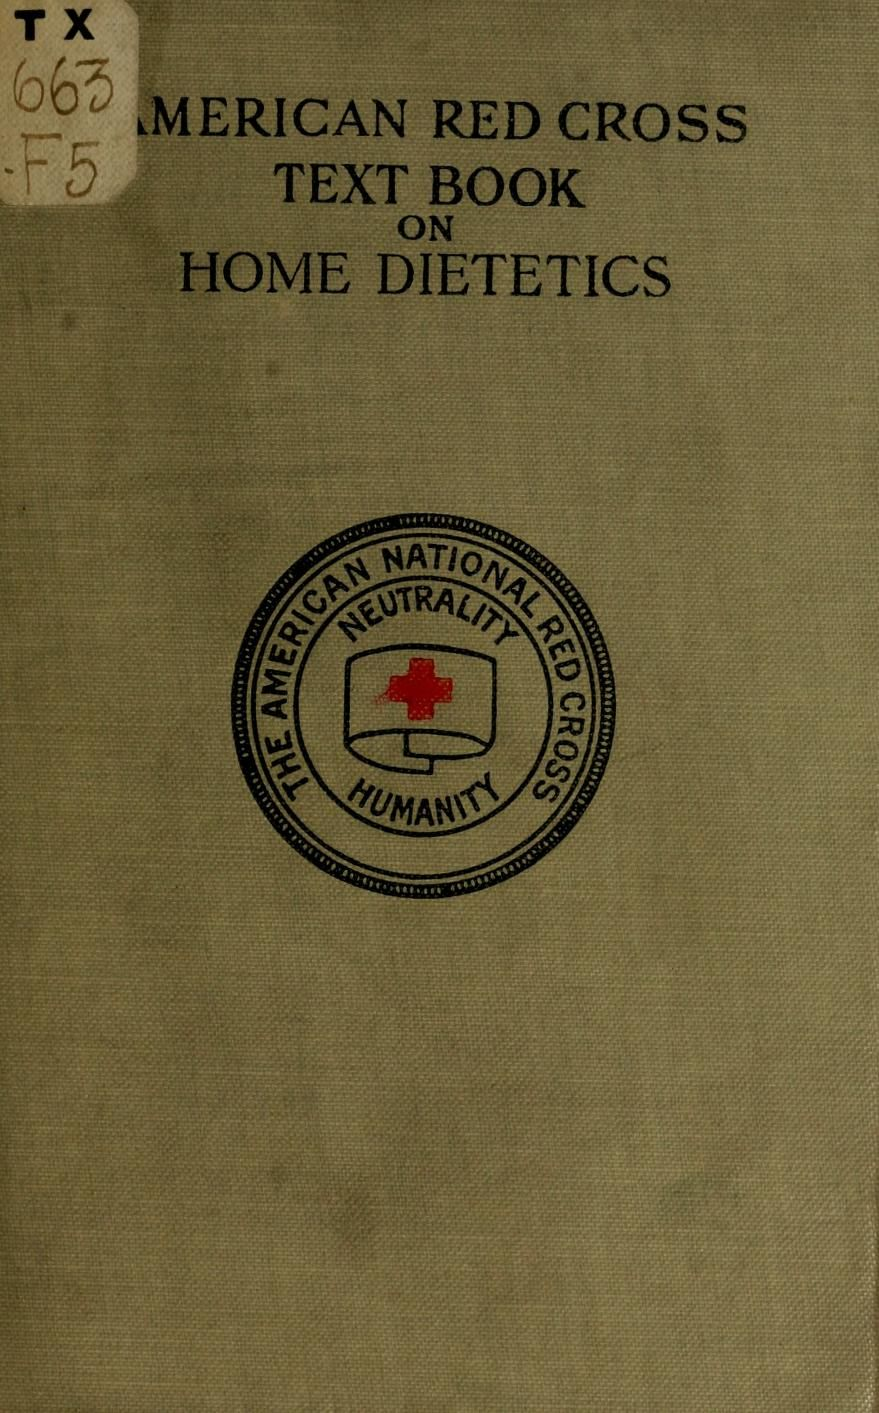 a21bd8f791d American Red cross text-book on home dietetics by Fish